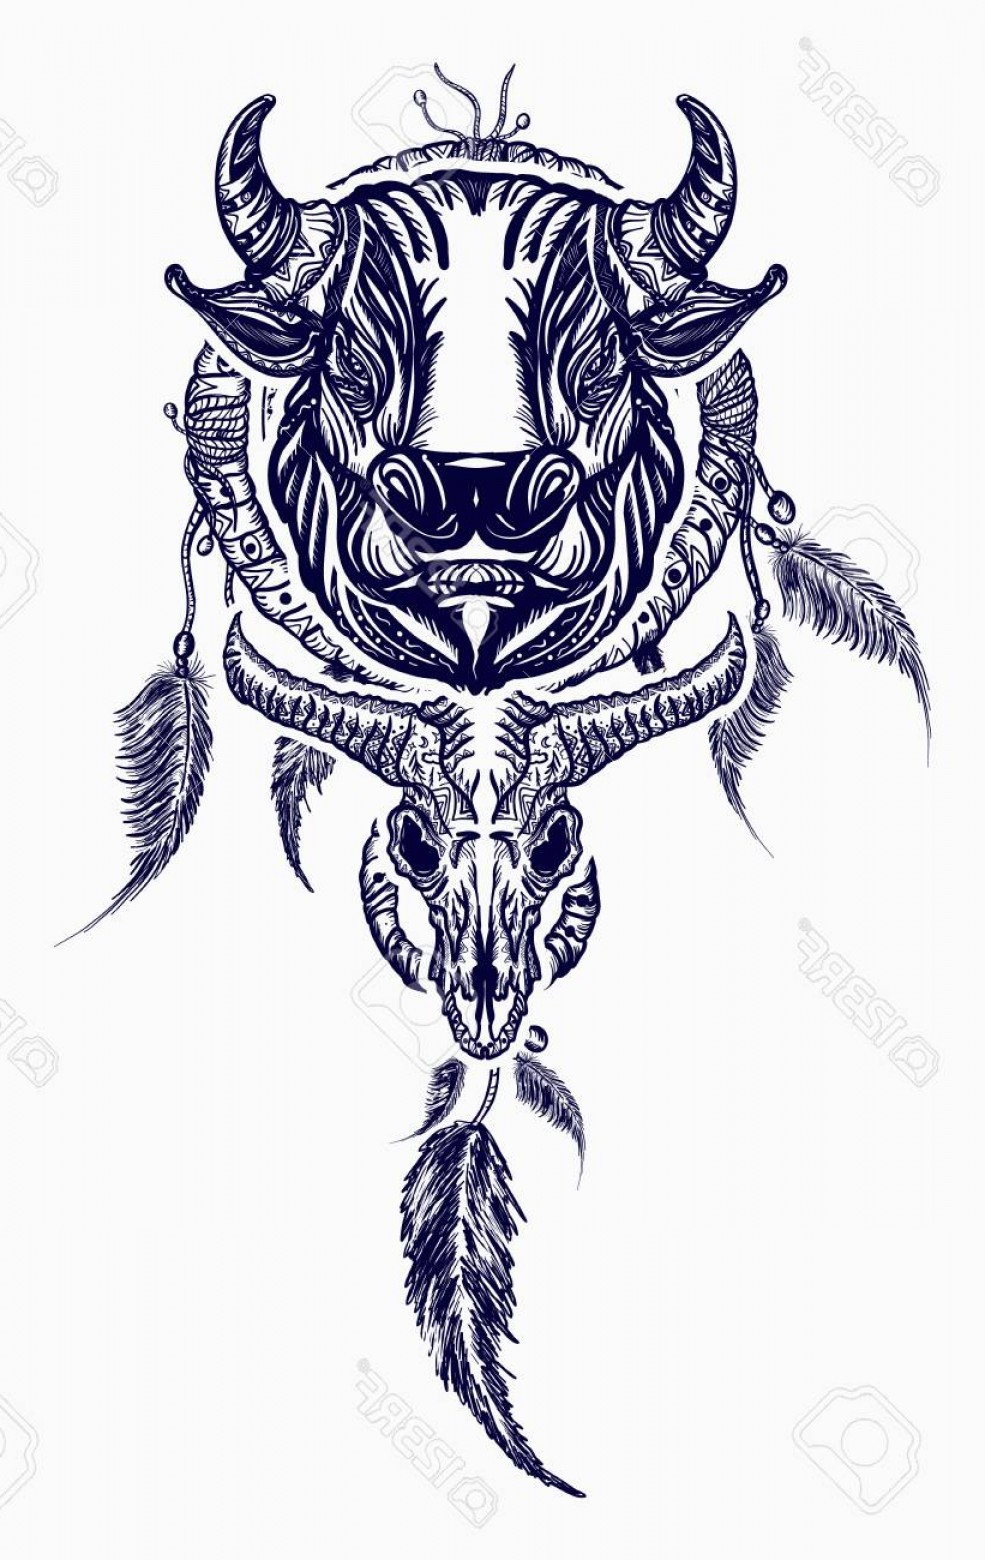 Dreamcatcher Tattoo Vector: Photostock Vector Tribal Bull And Dreamcatcher Tattoo Art Indian Dream Catcher With Ethnic Ornaments And Ethnic Bull H